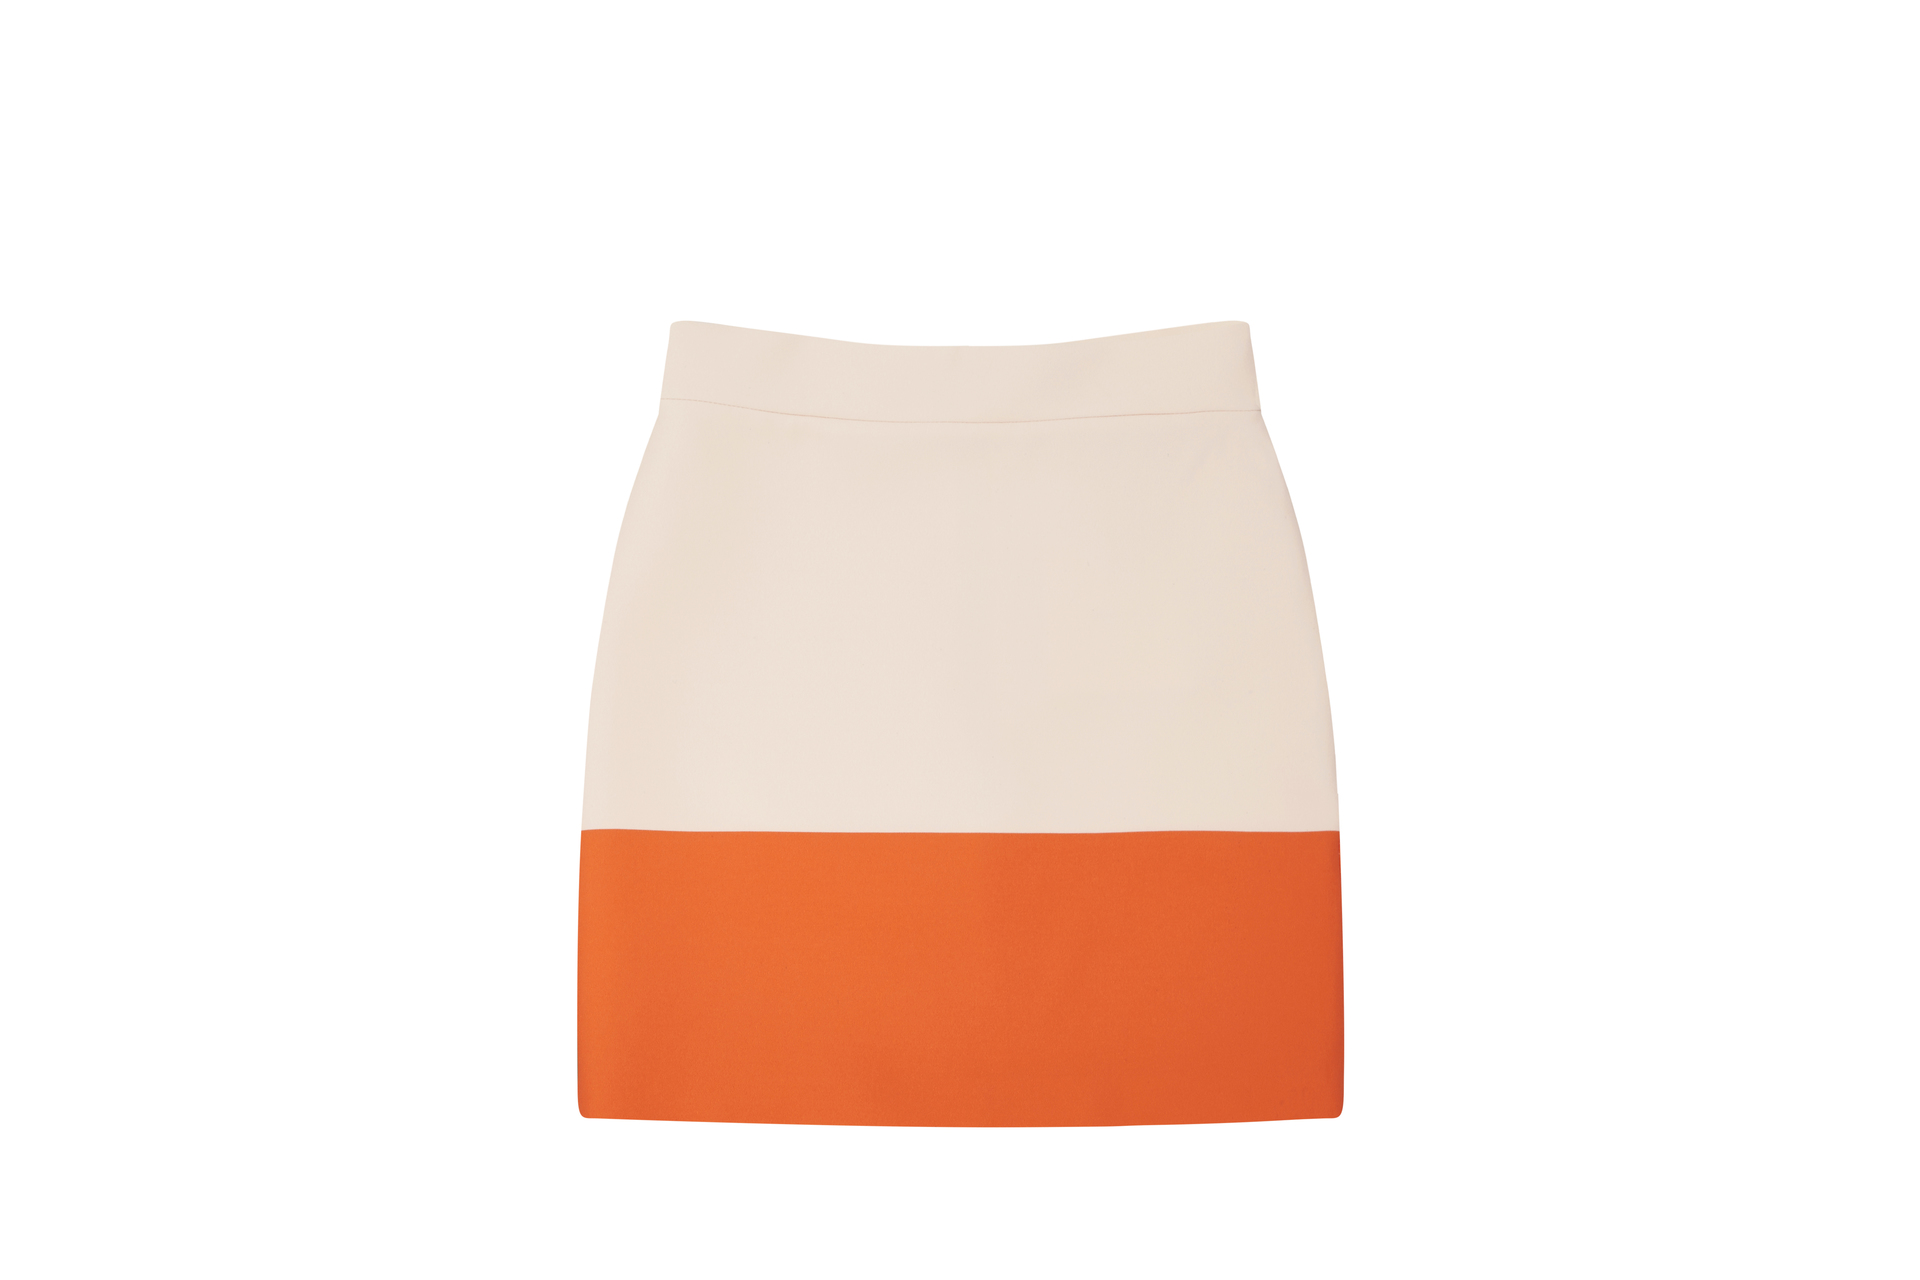 72dpi-2391734c02-43.-BY-JOHNNY,-Bold-Colour-Mini-Skirt-Flesh-Tangerine,-250,-www.byjohnny.com.au